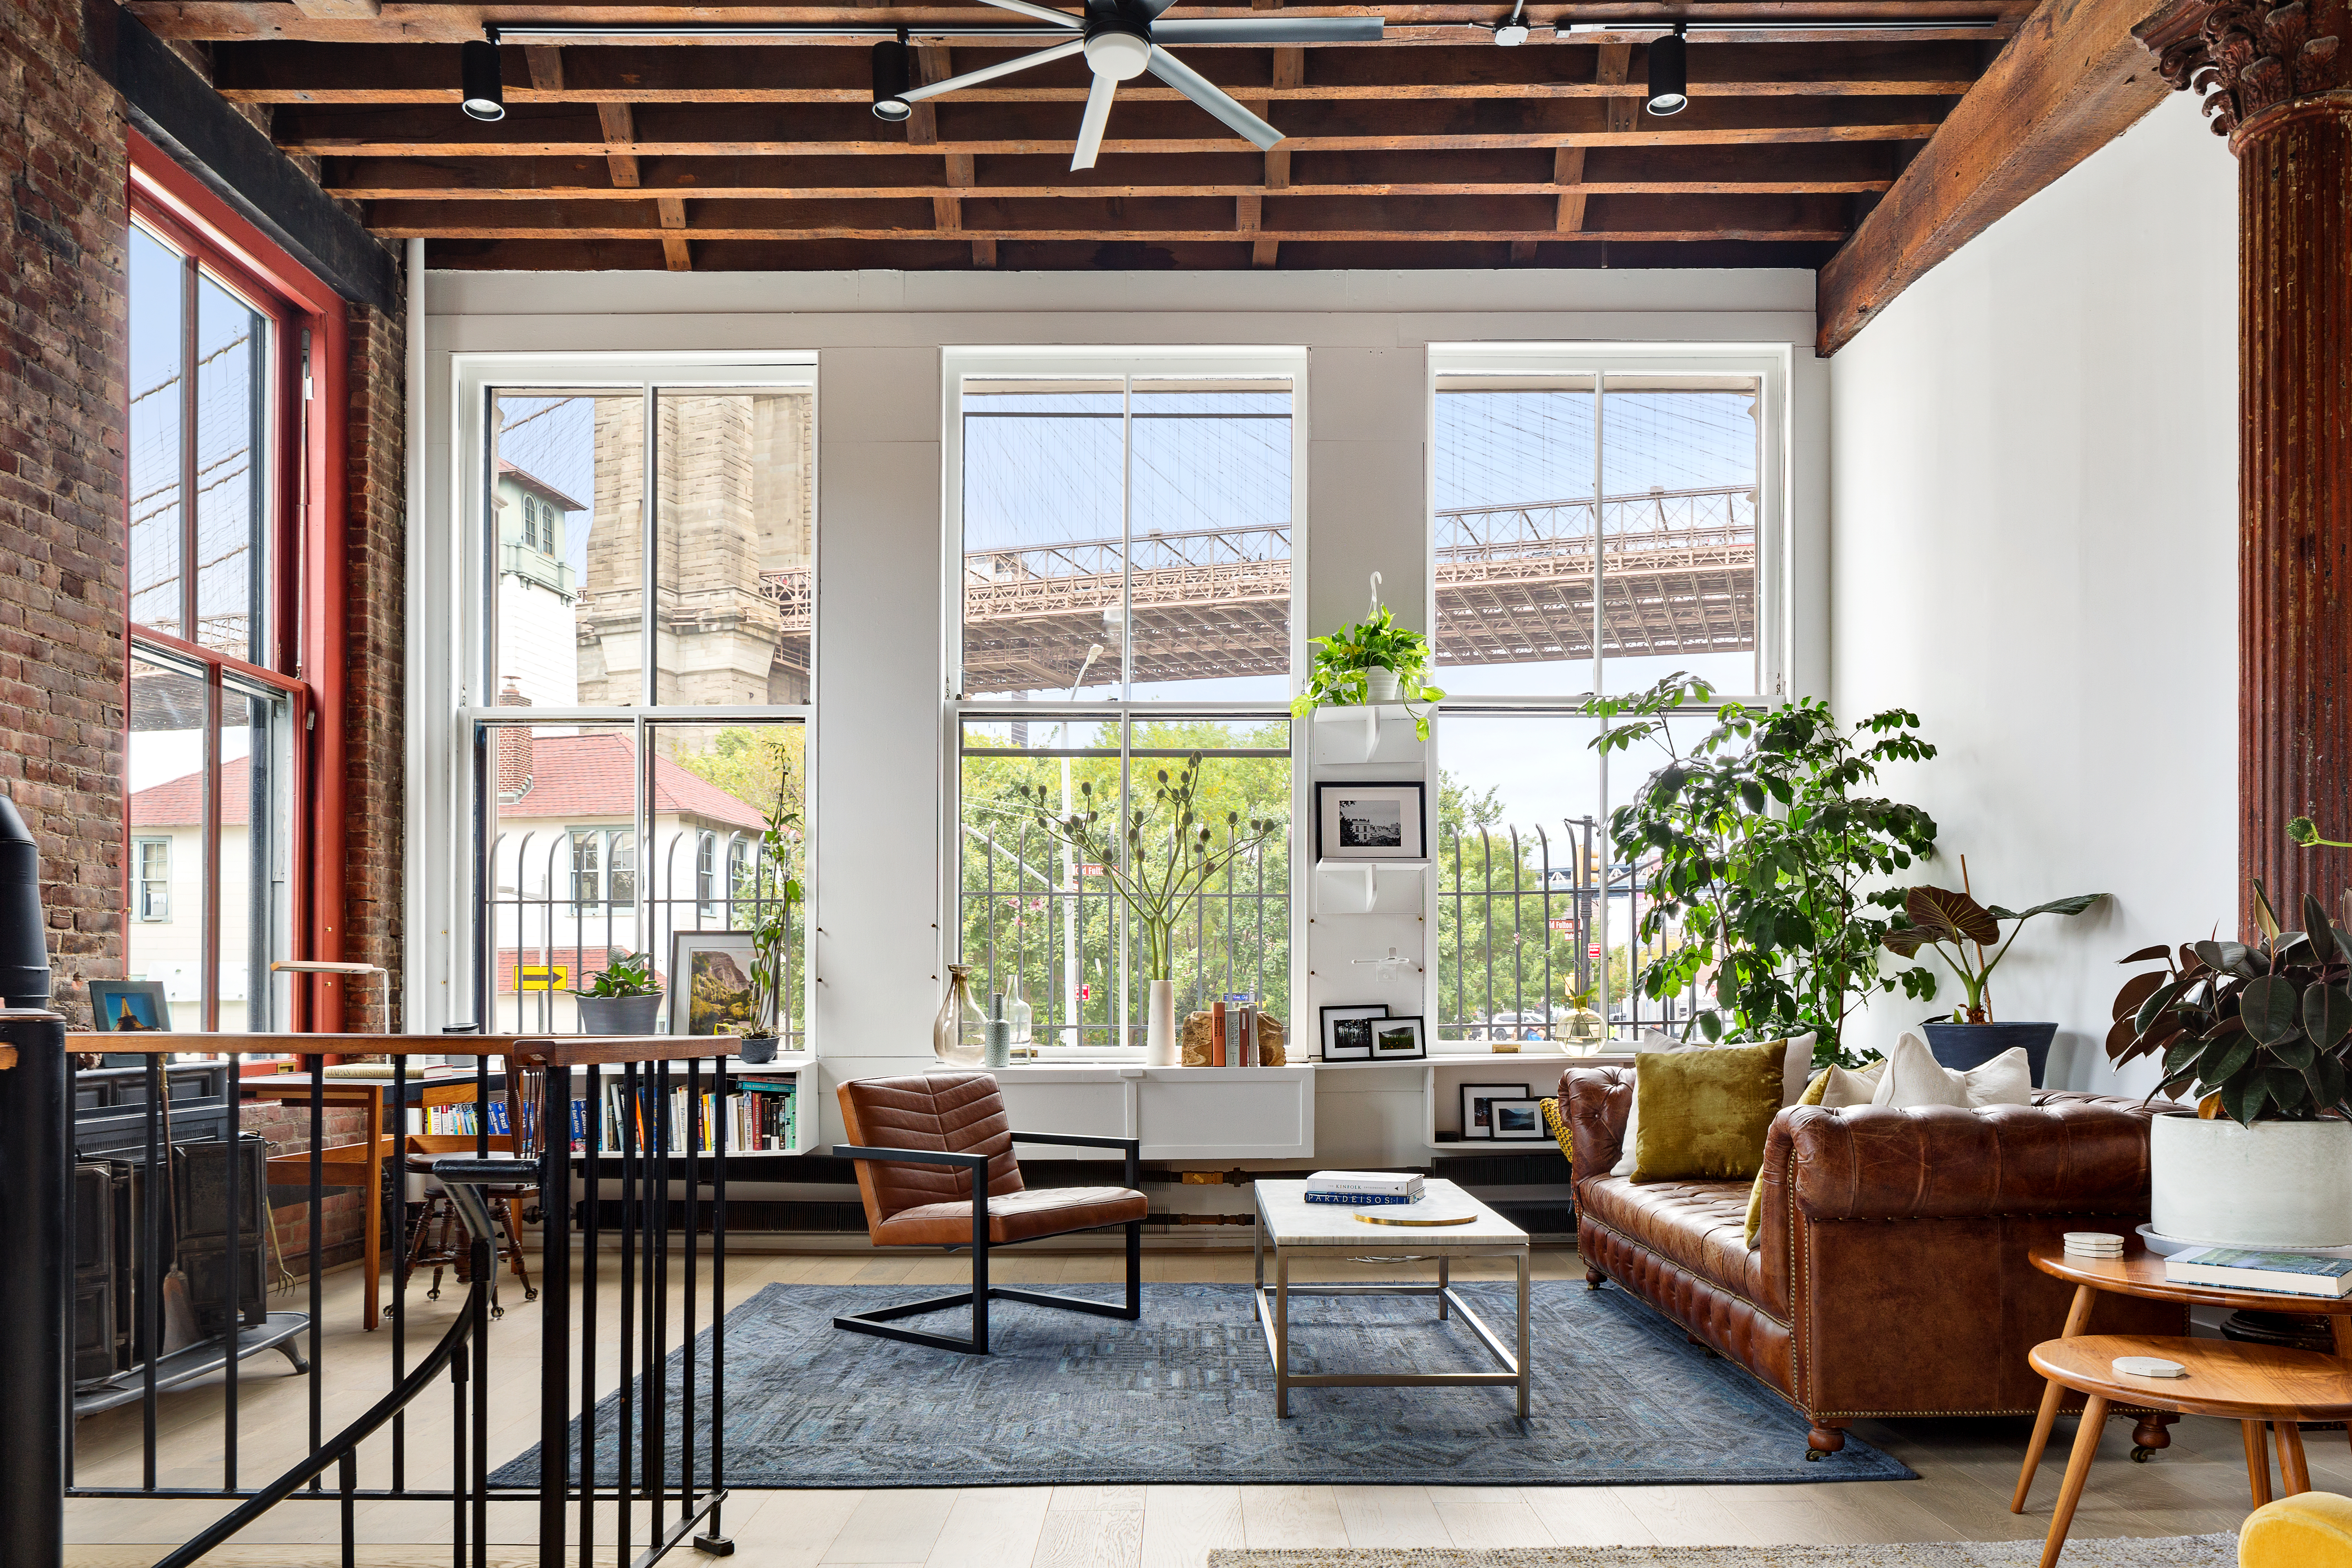 A living room with large windows, a brown leather couch, and a rug.